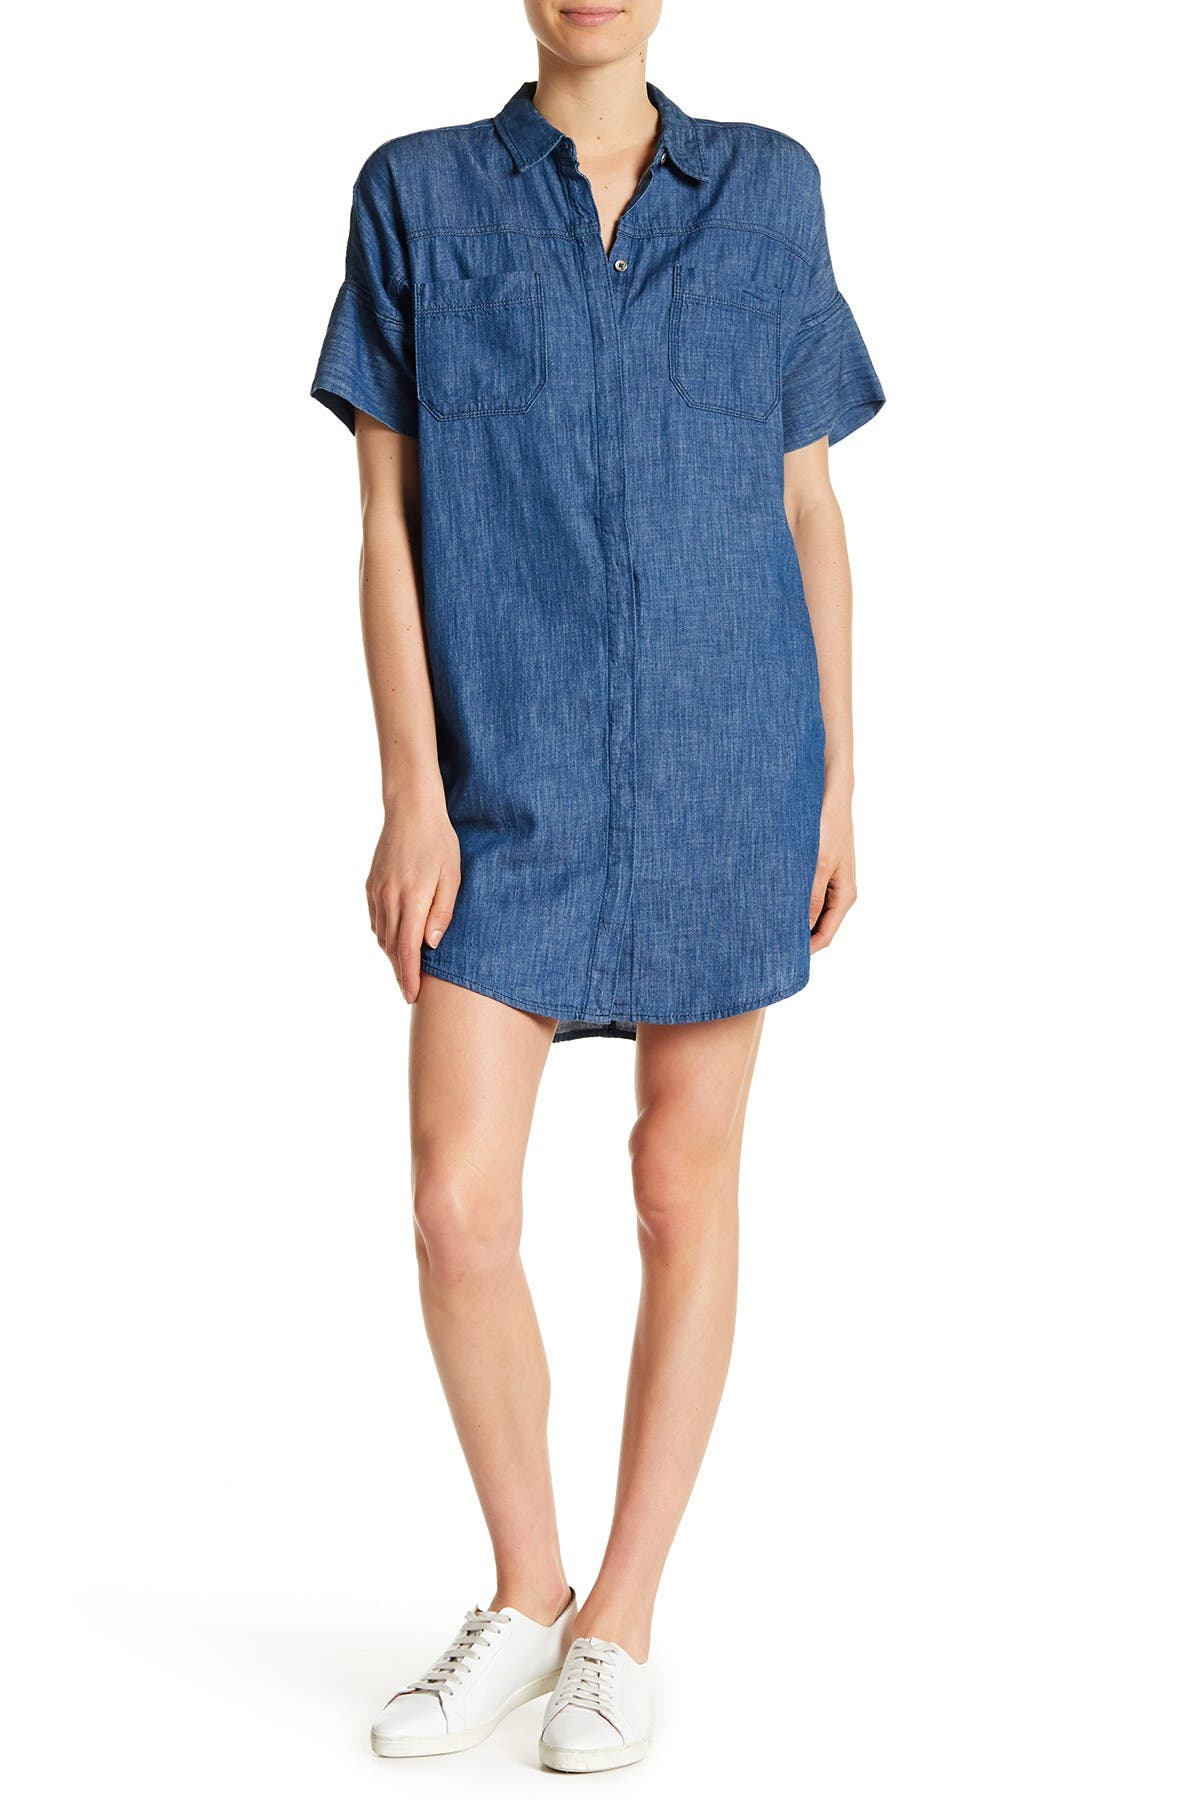 Image of BLANKNYC Denim Short Sleeve Denim Shirt Dress